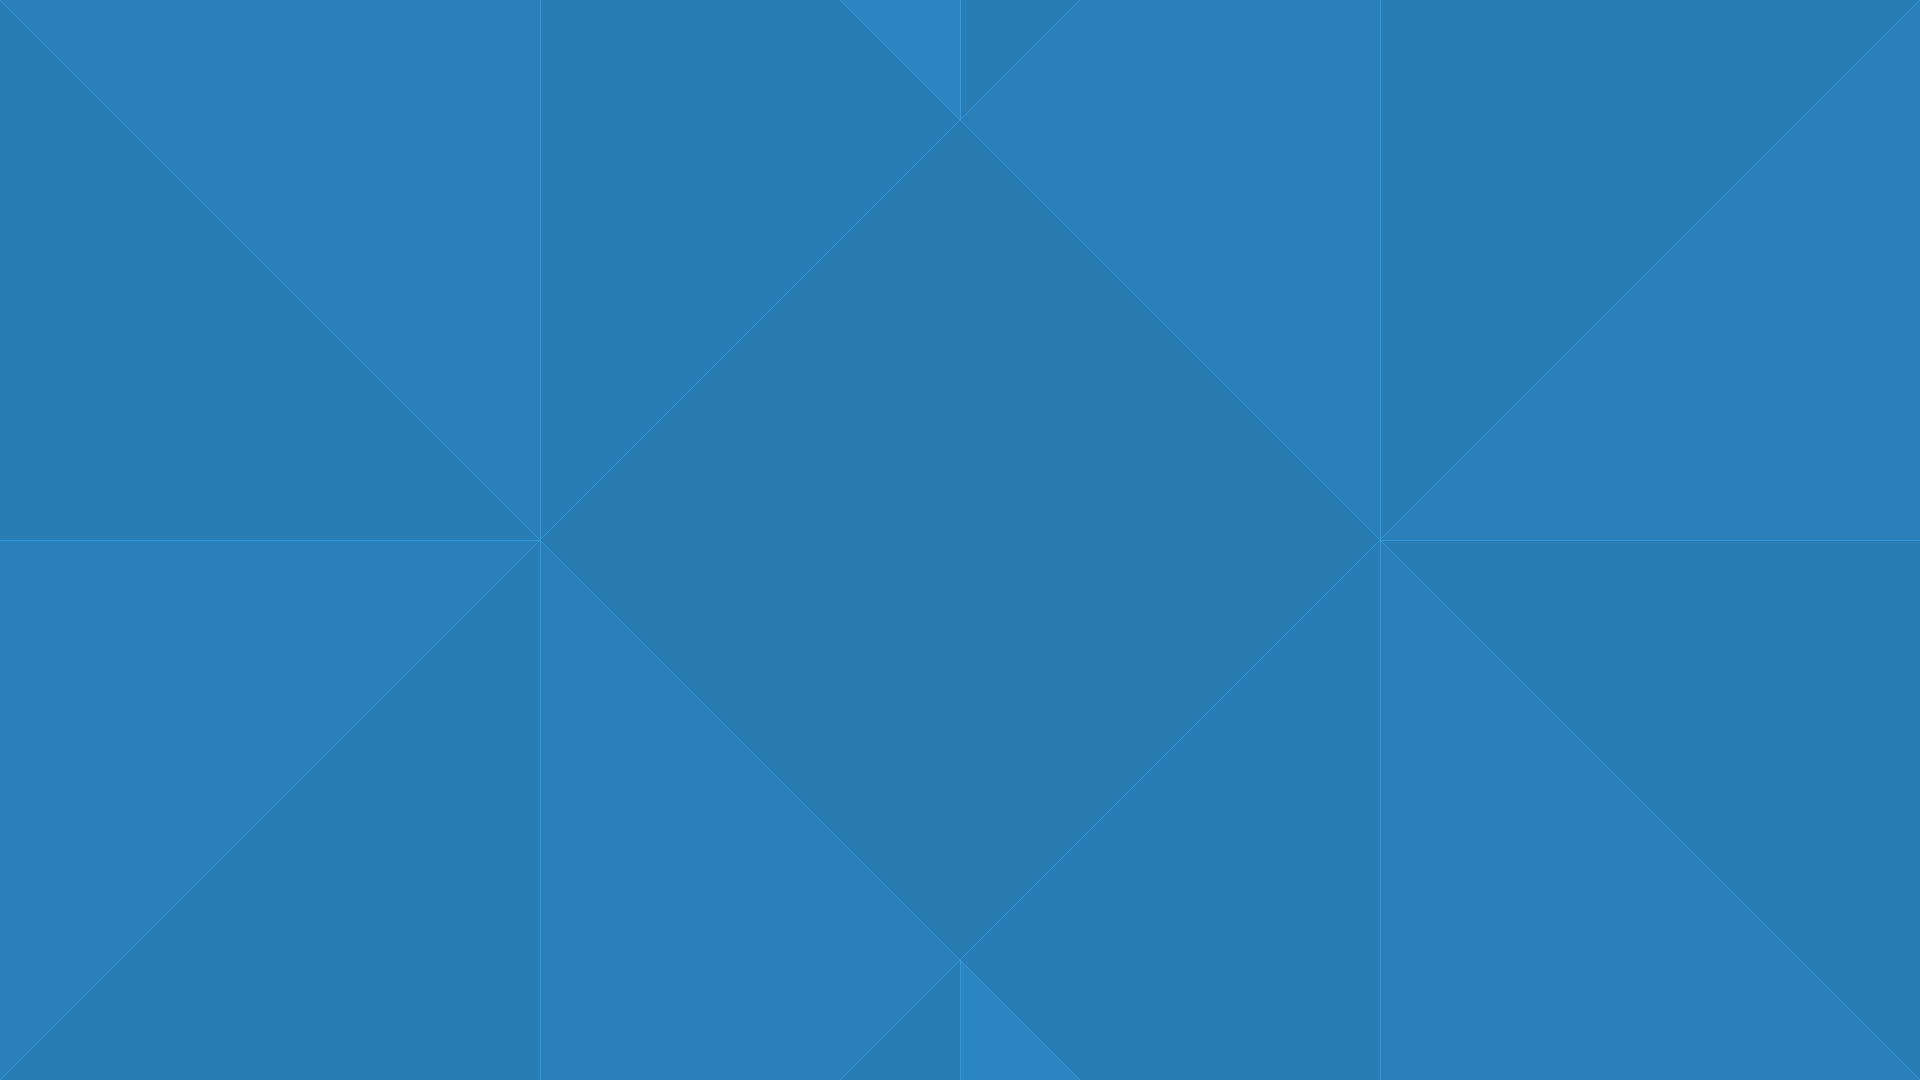 1080 png 27kB Blue Geometric Wallpaper 1 The Art Mad Wallpapers 1920x1080